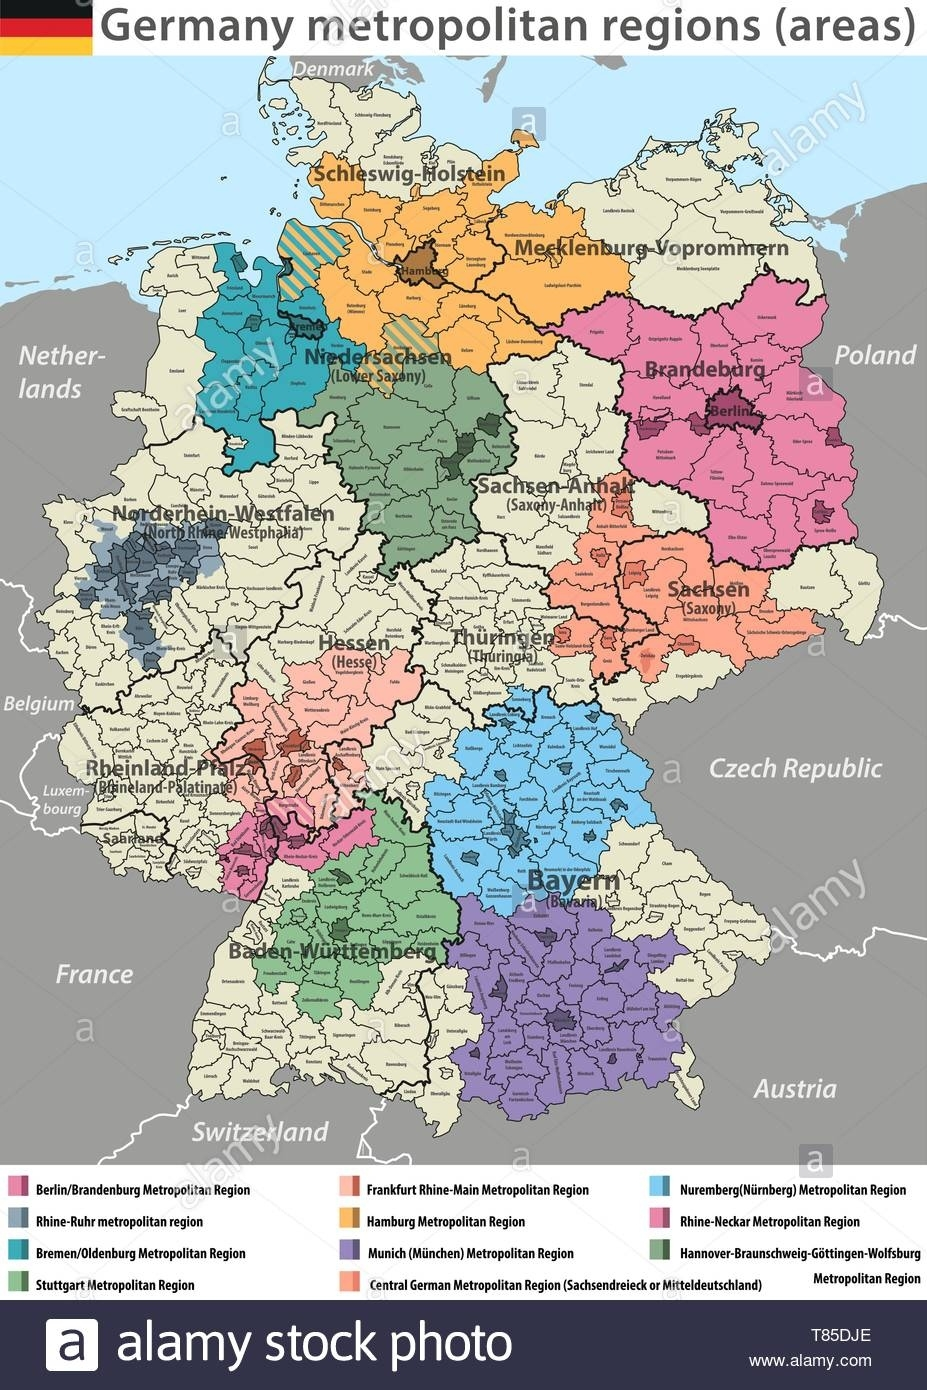 Vector High Detailed Map Of Germany Metropolitan Regions (Areas within Germany Regions Map